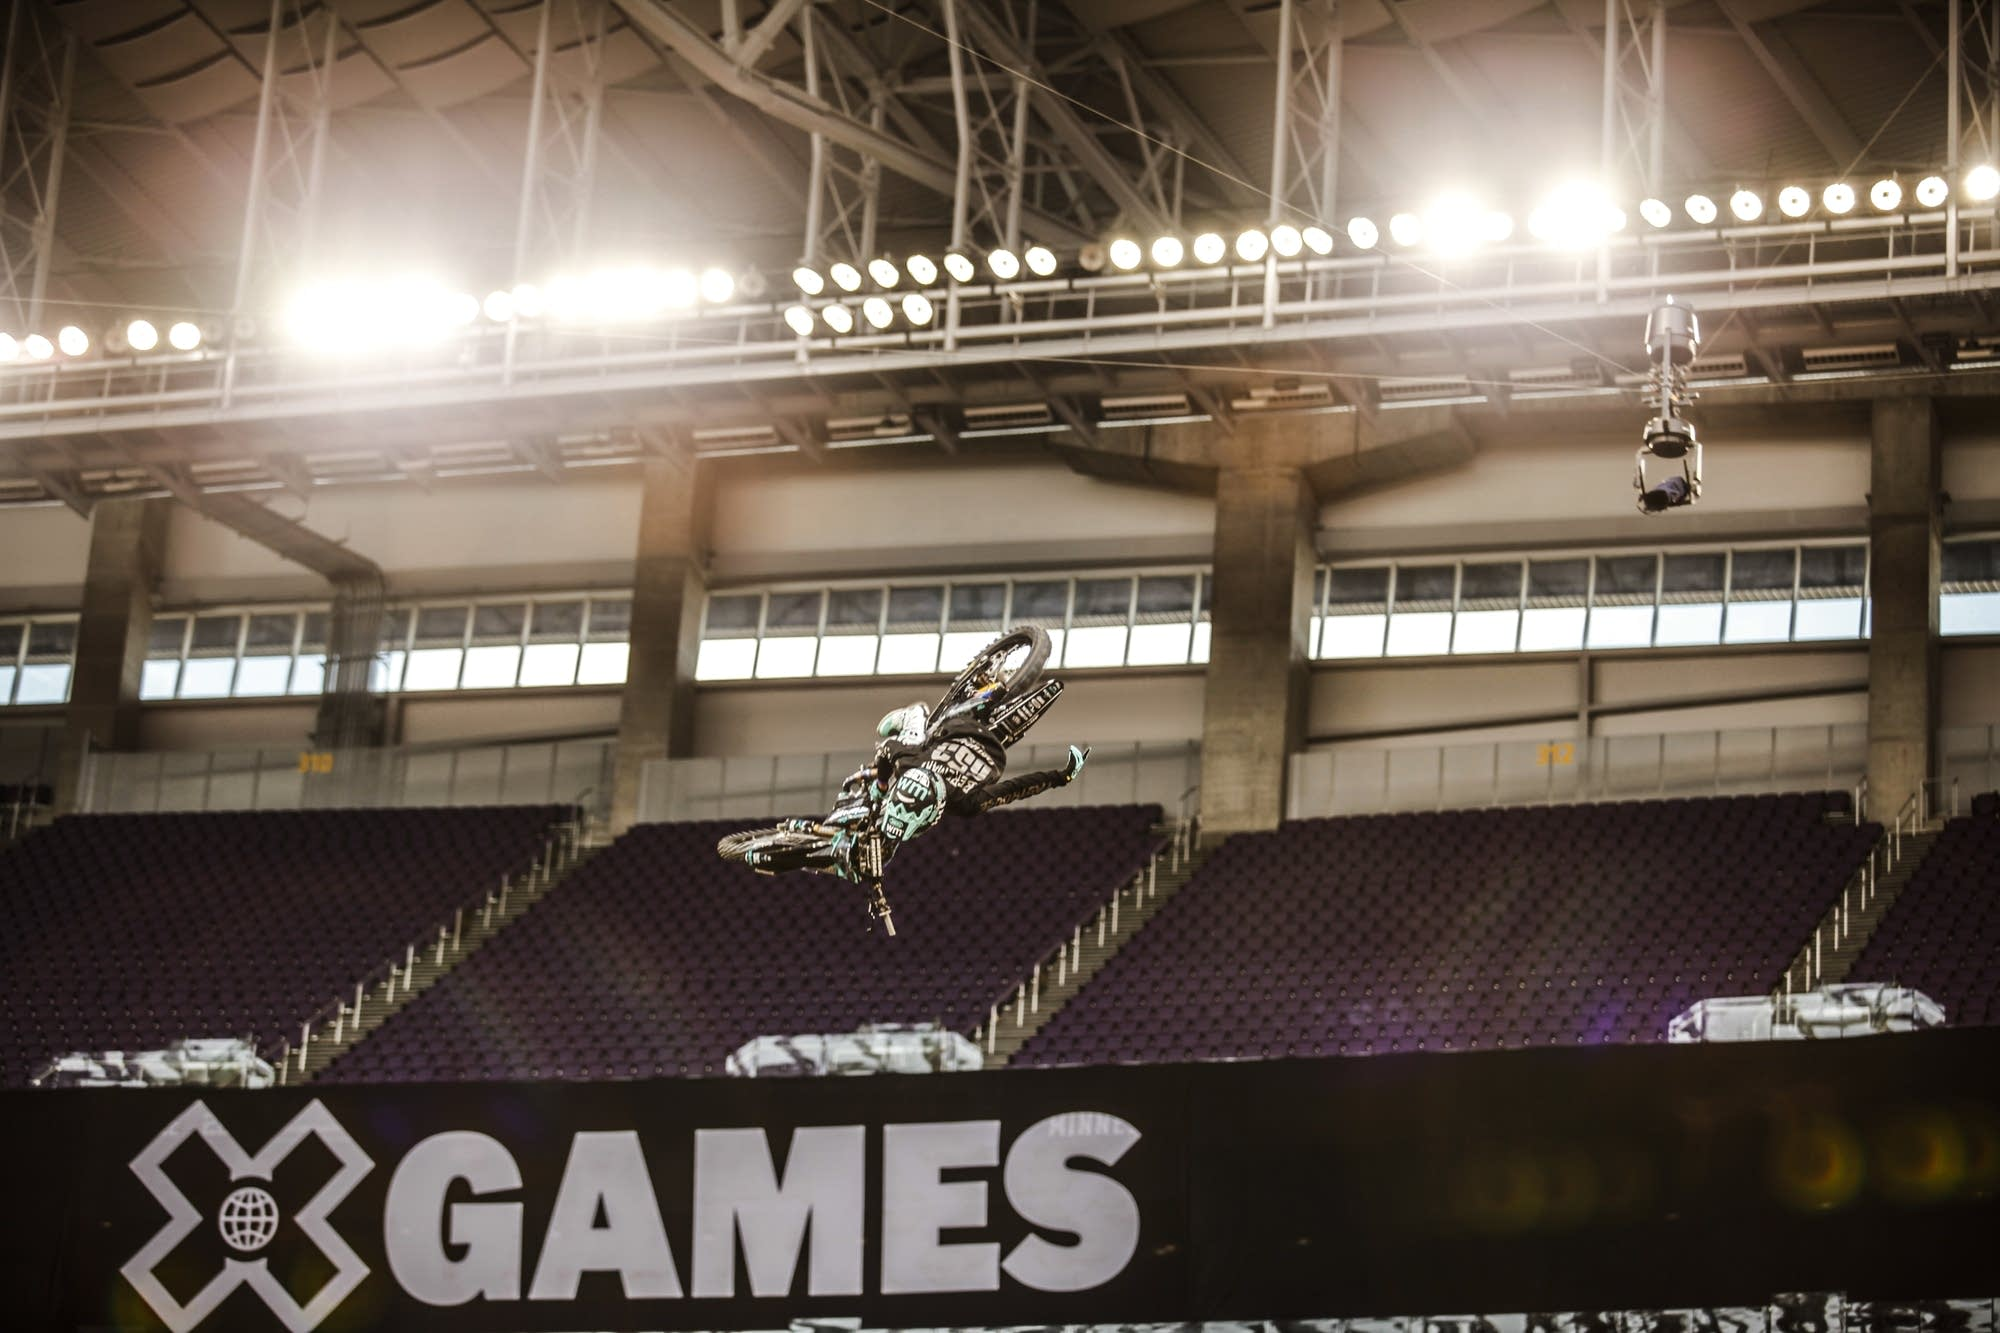 California native Tyler Bereman jumps a height of about 25 feet.